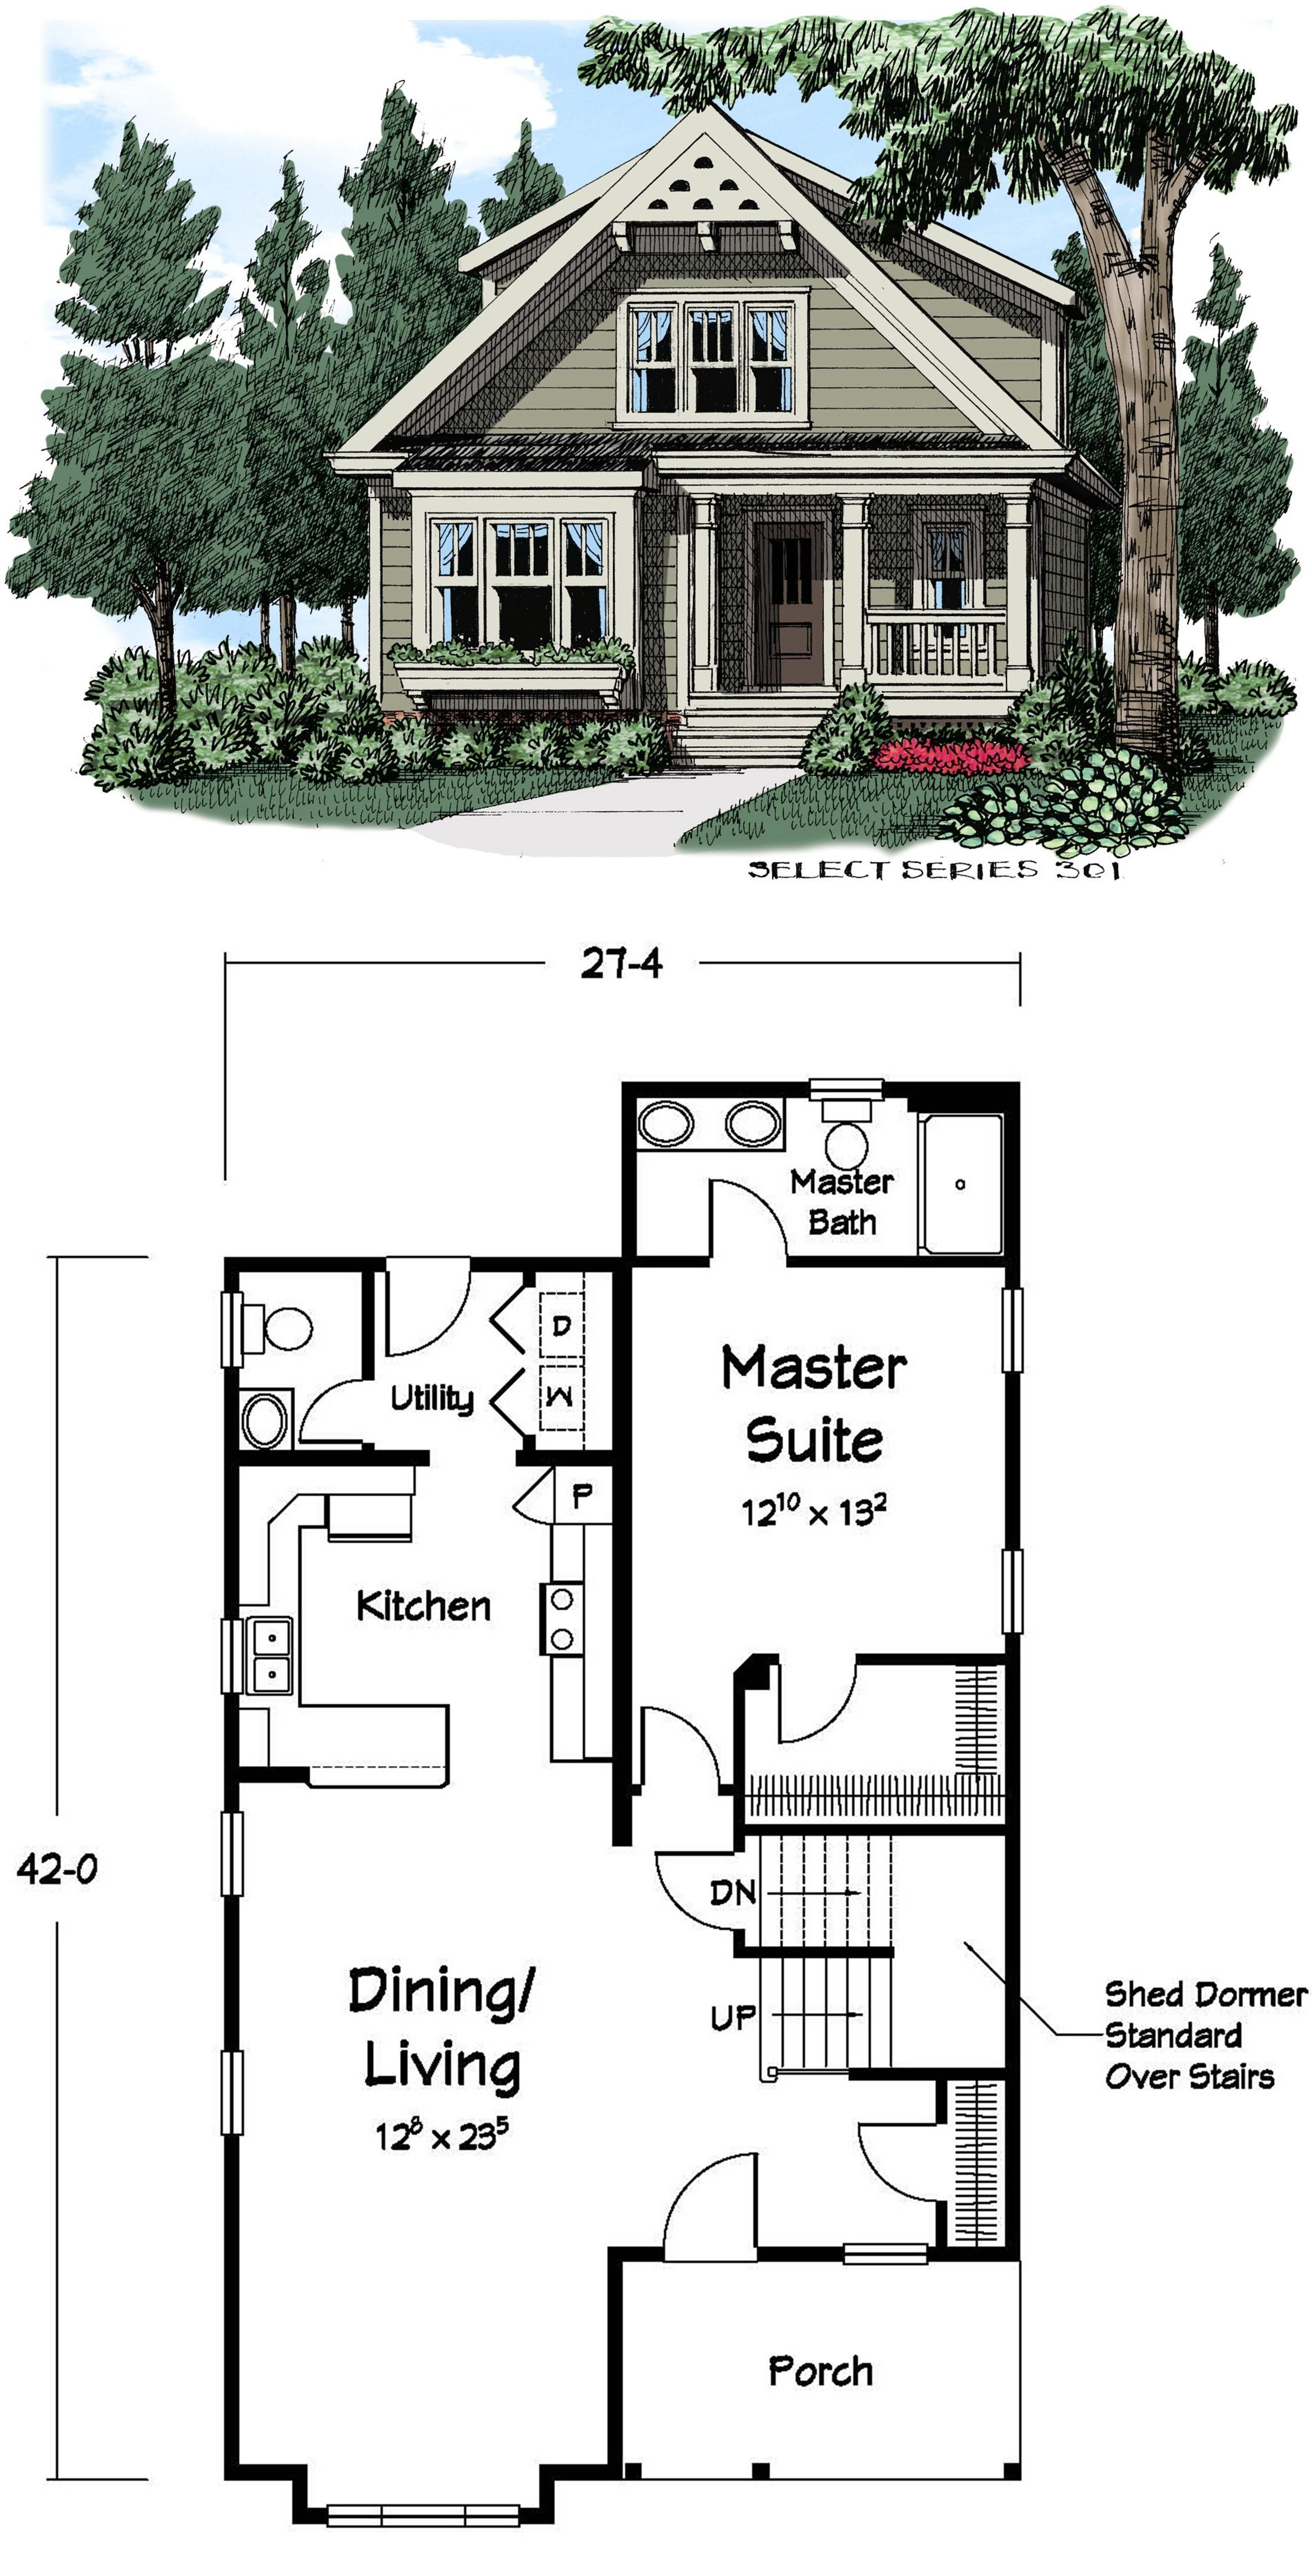 House Add On Plans Unique Add Two Bedrooms and An Fice the Left Side the House